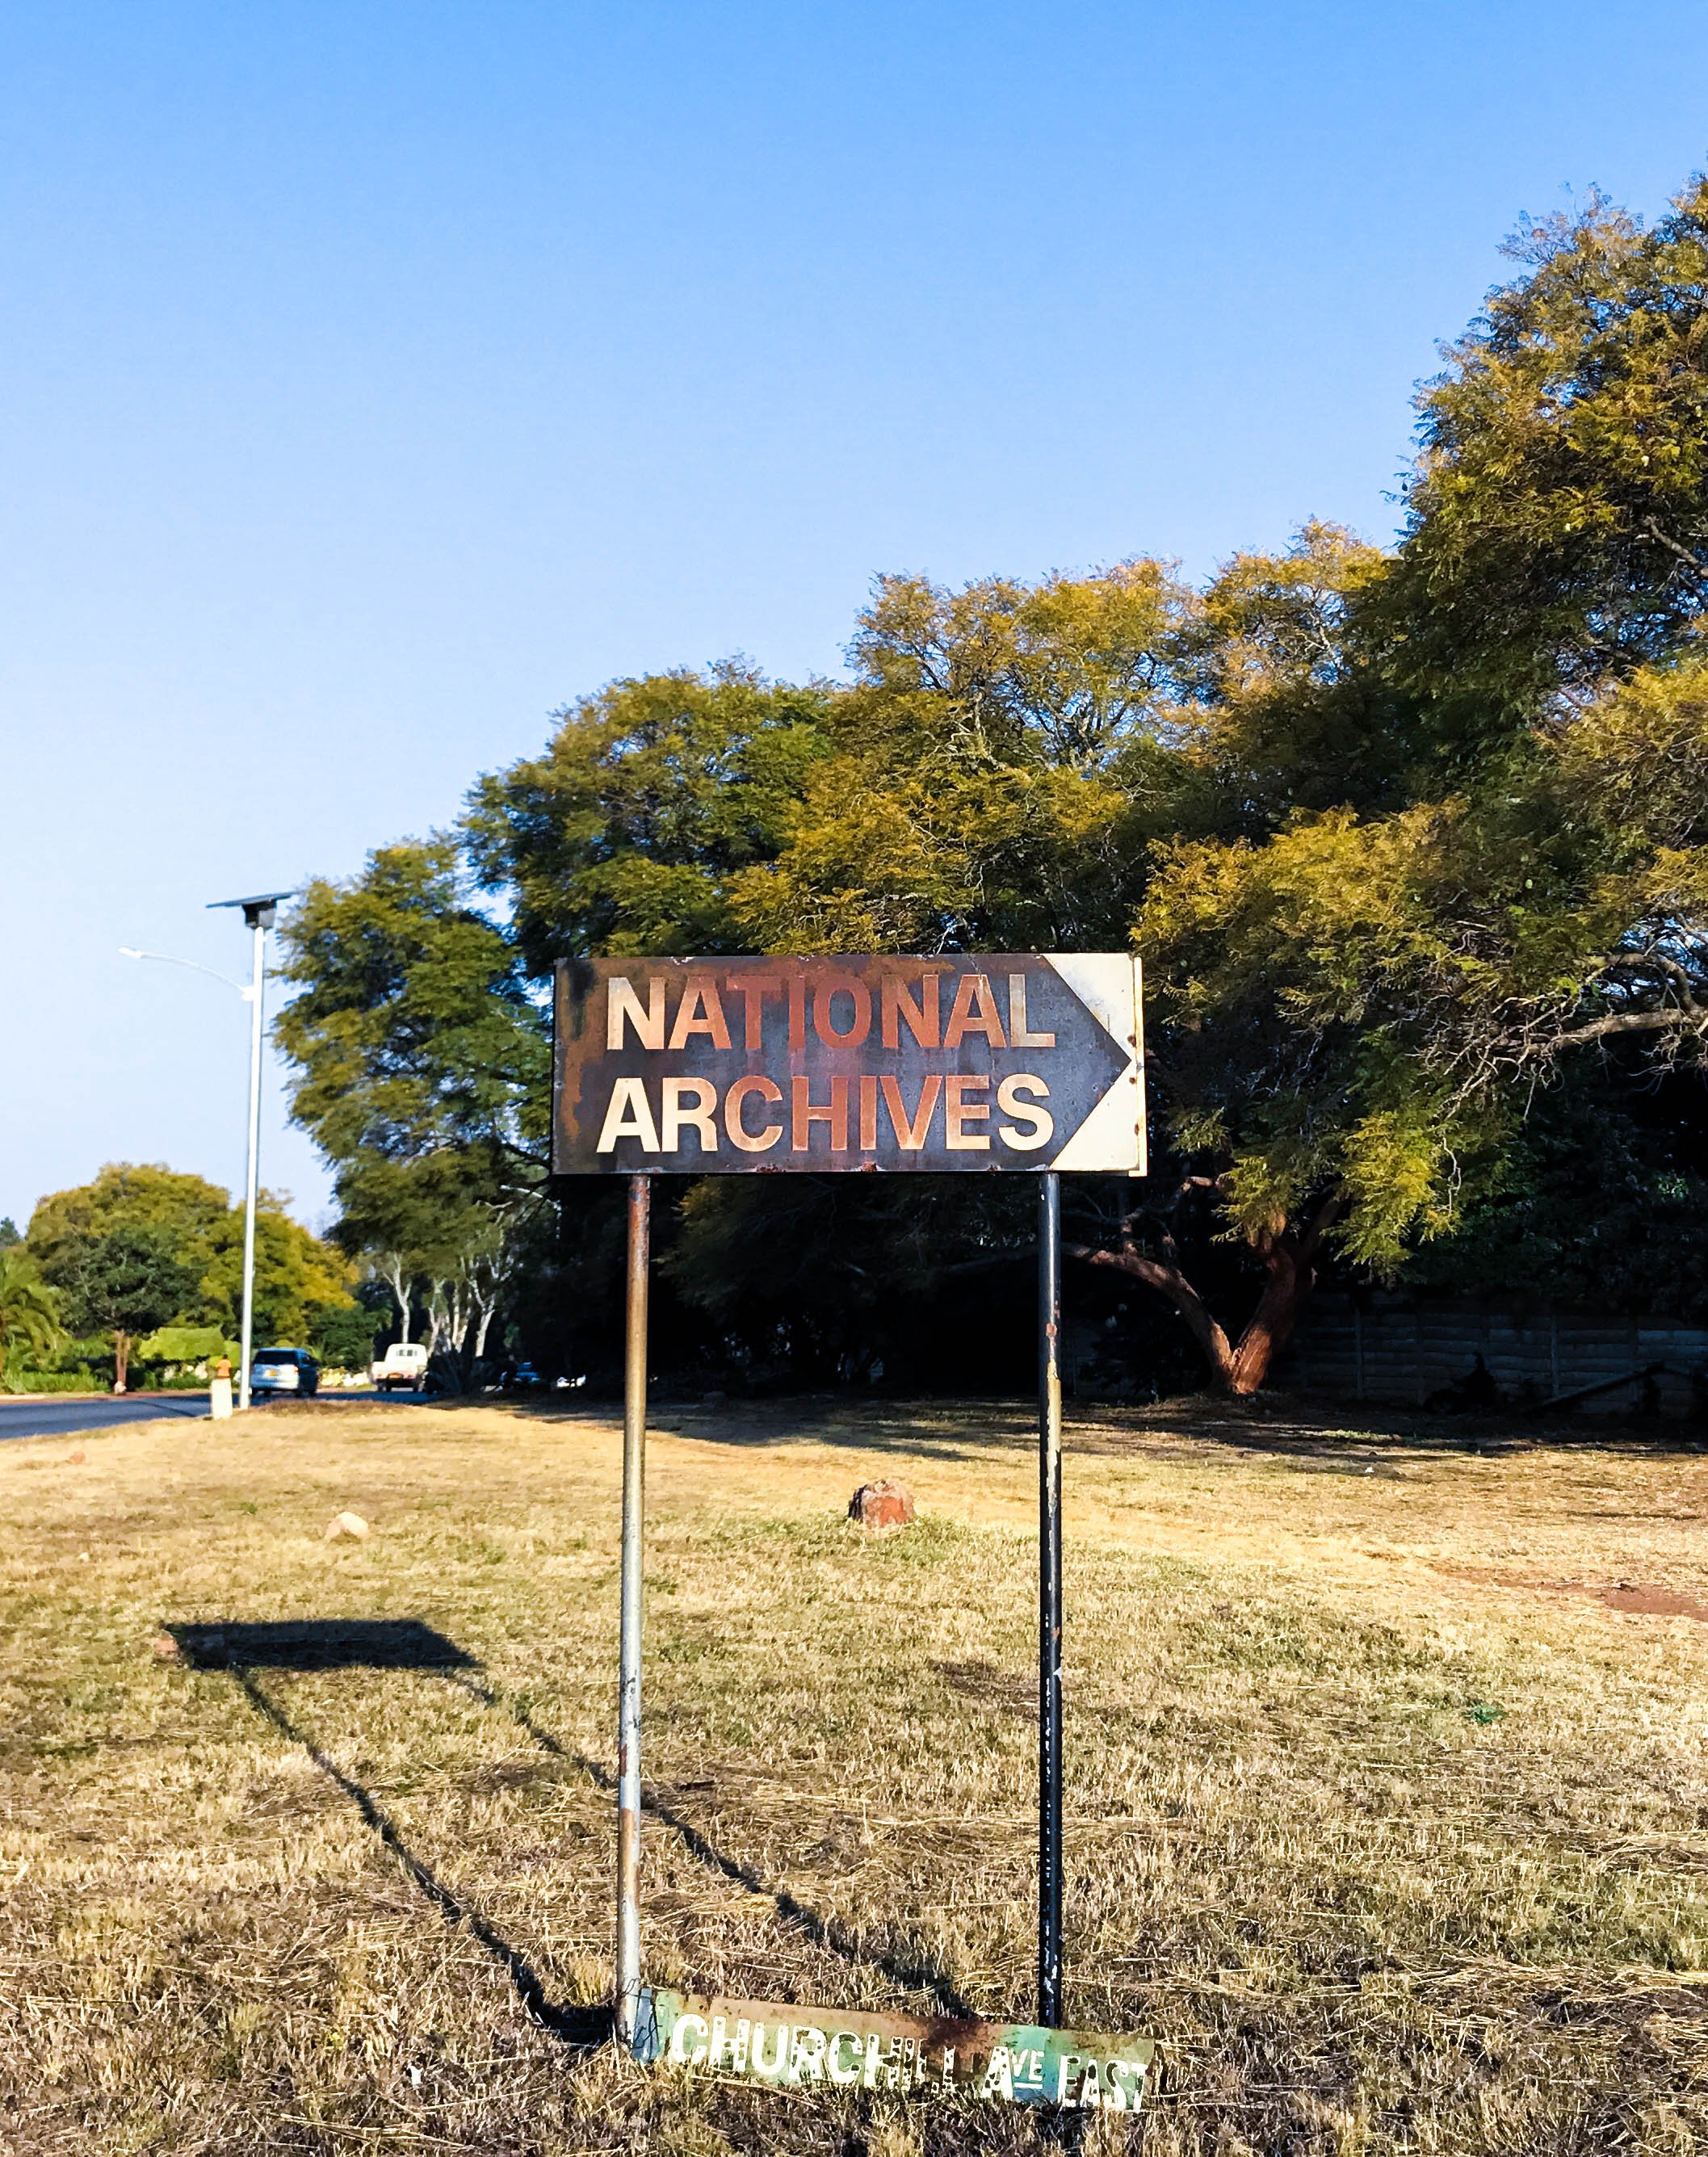 Sign to National Archives, Harare, Zimbabwe (2017)